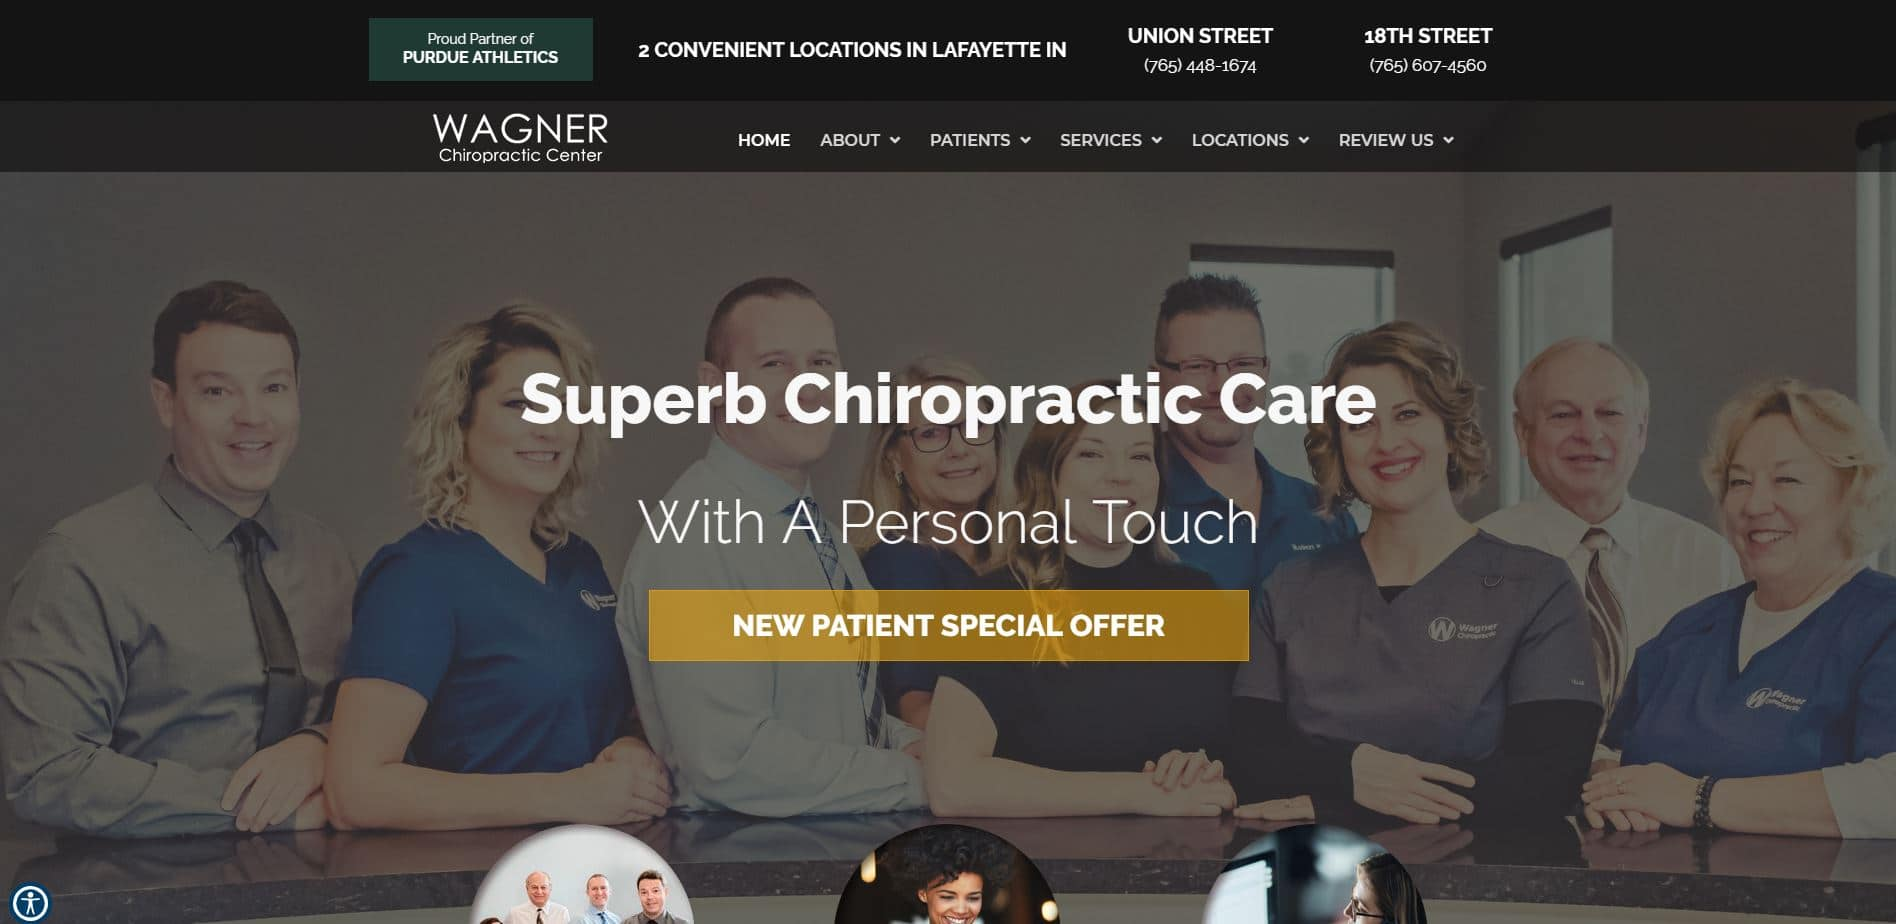 Chiropractor in Lafayette